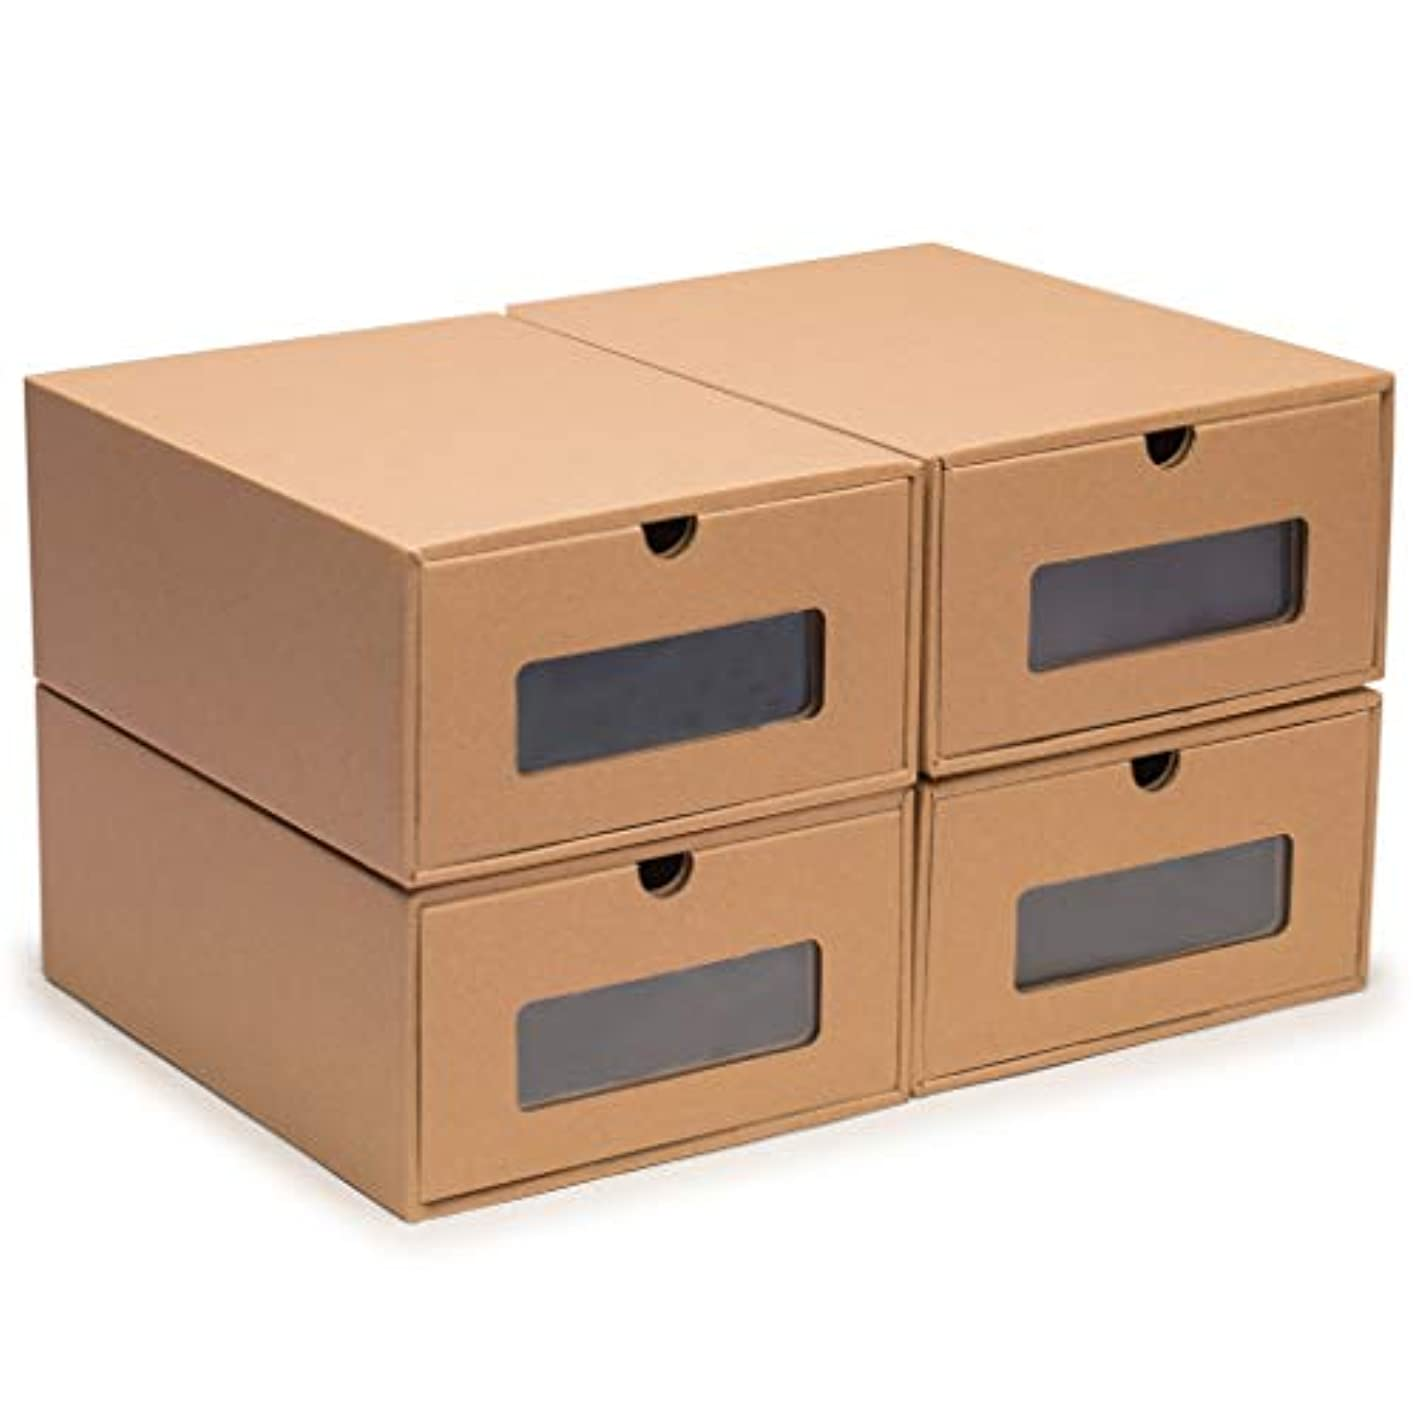 Nicely Neat Transparent Shoe Box Drawers - Stackable Storage Organizer Case for Women's Shoes - Set of 4